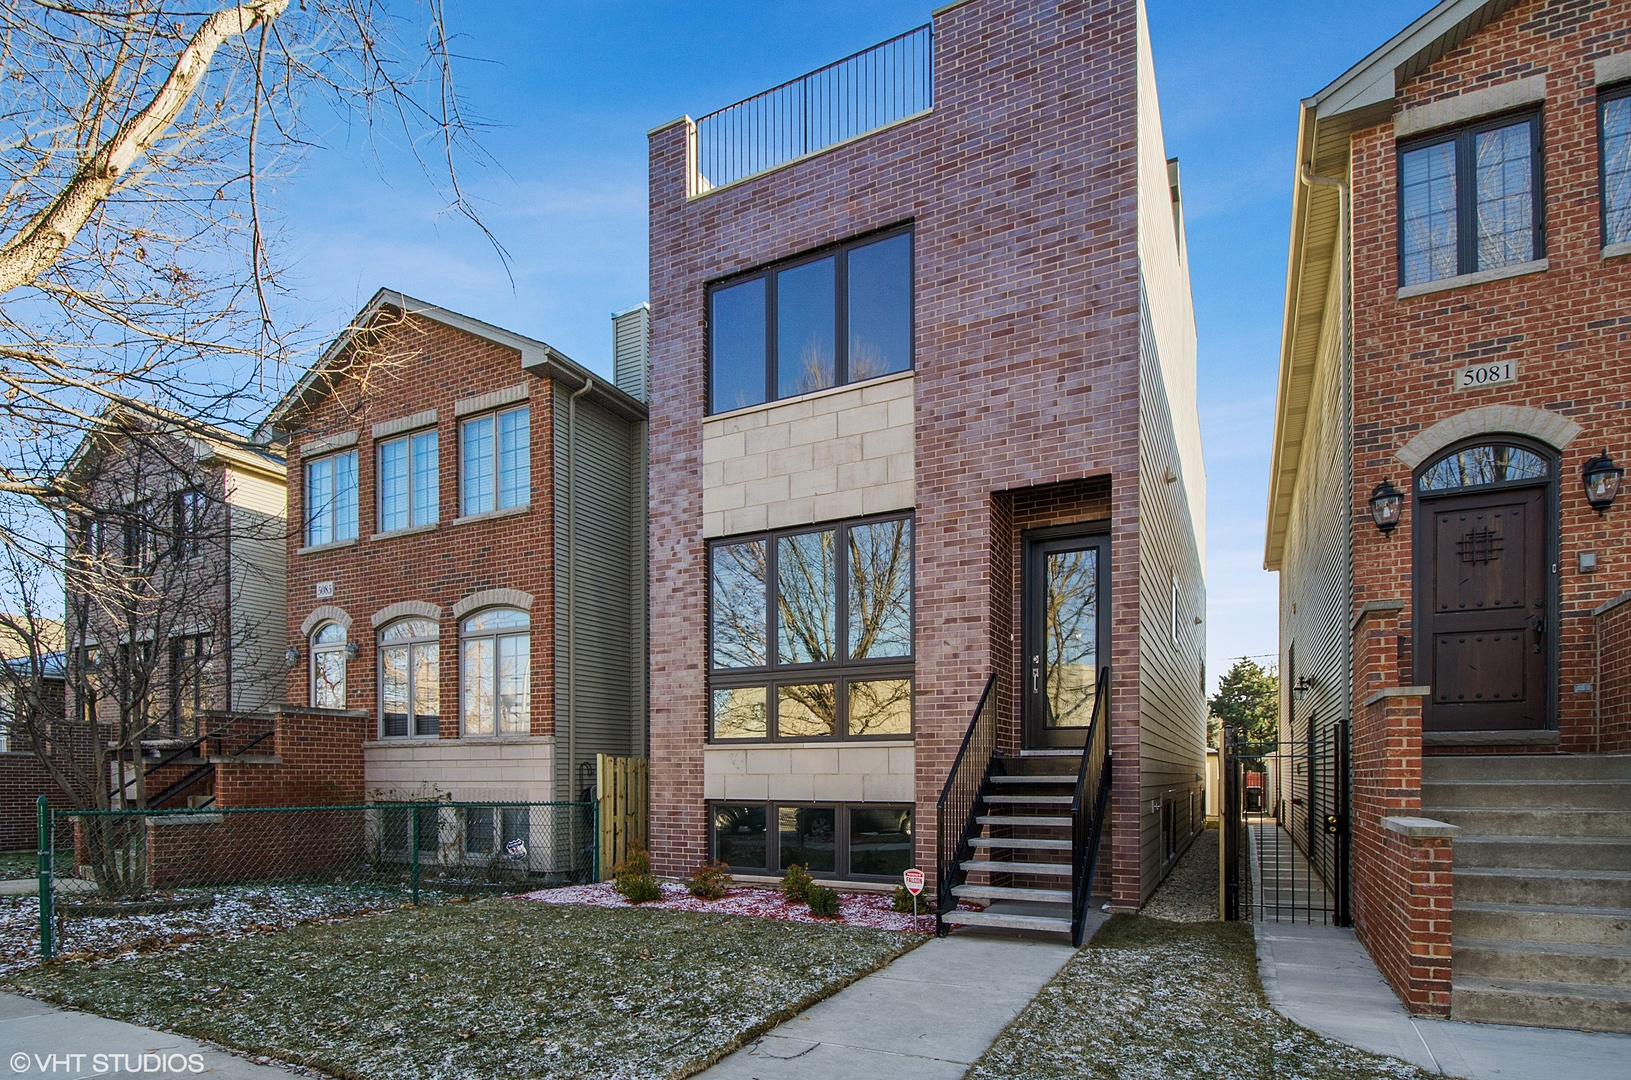 5083 NORTH KIMBERLY AVENUE, CHICAGO, IL 60630